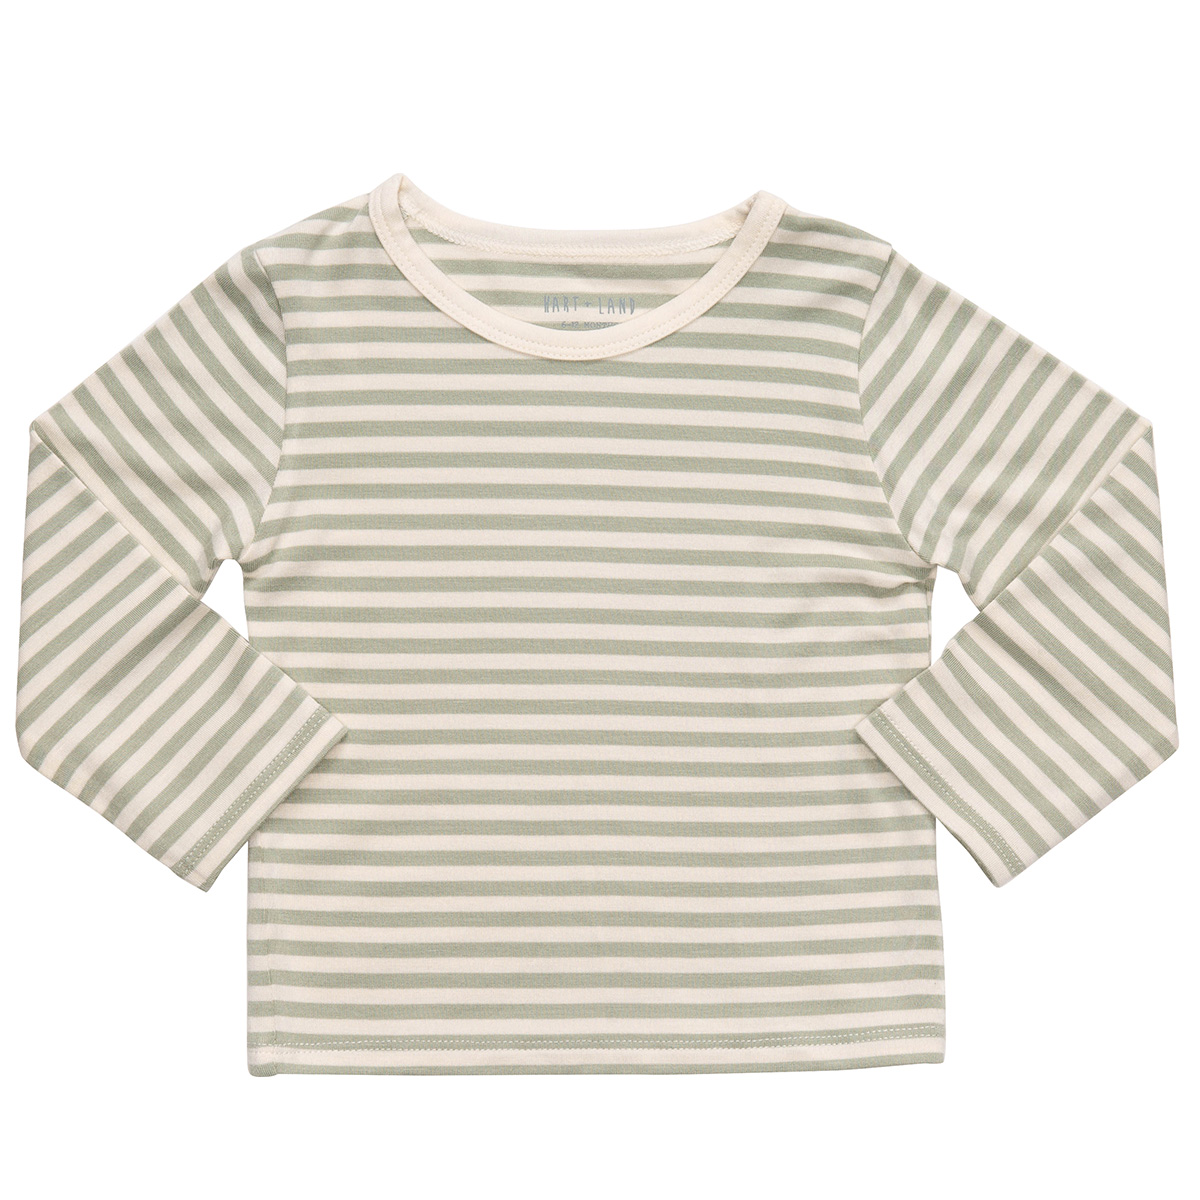 HART + LAND Long Sleeve Crew Tee- Simple Stripe